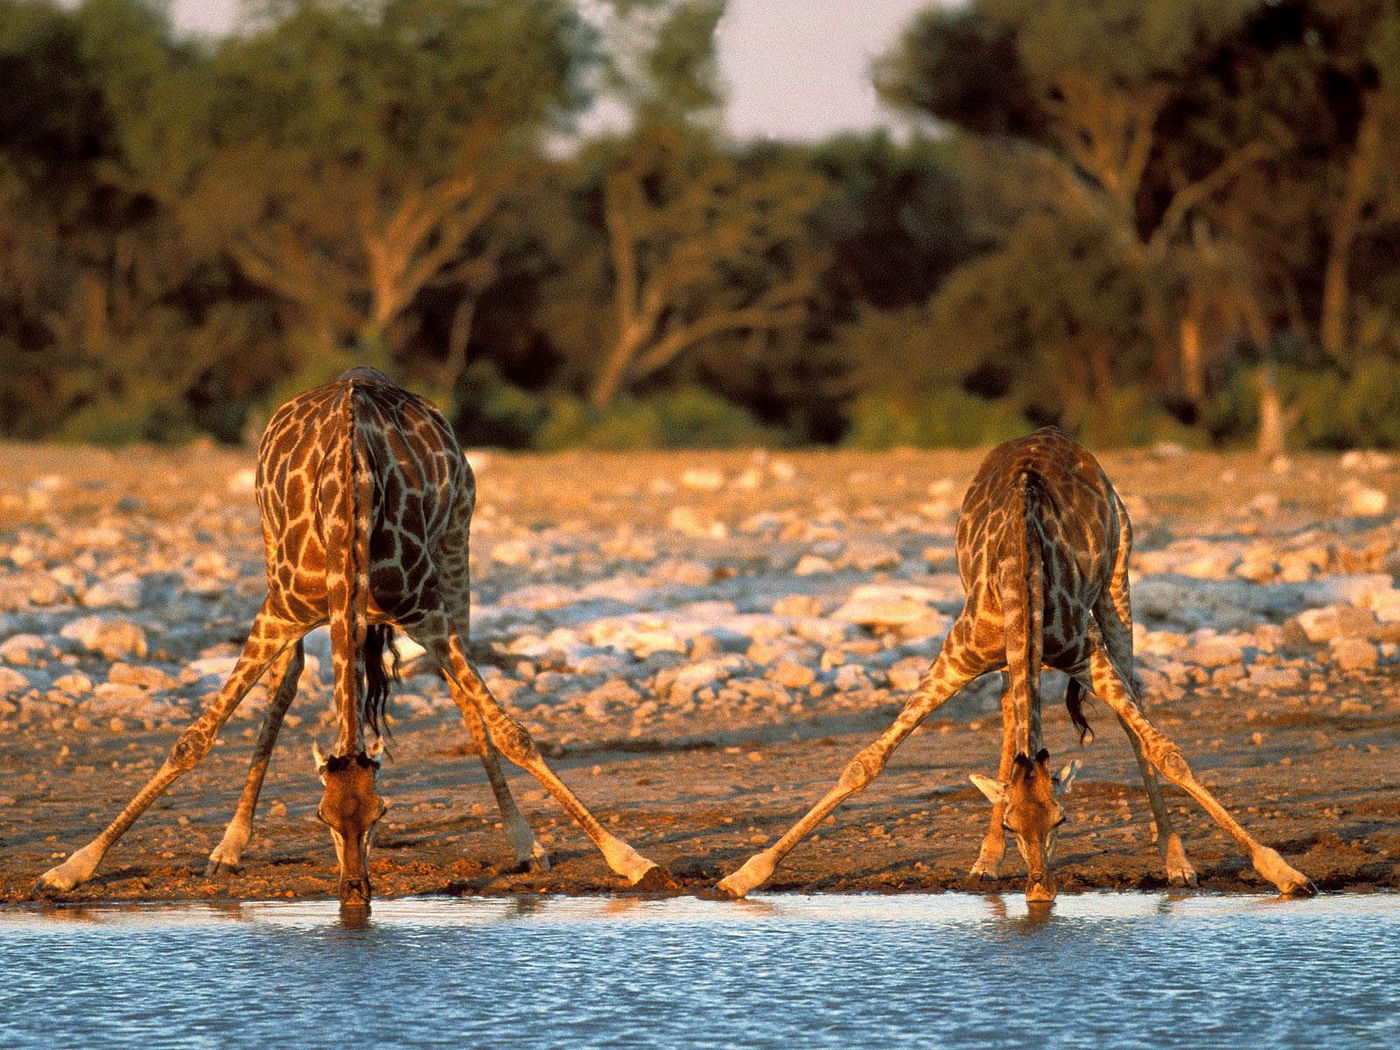 46340 download wallpaper Animals, Giraffes screensavers and pictures for free